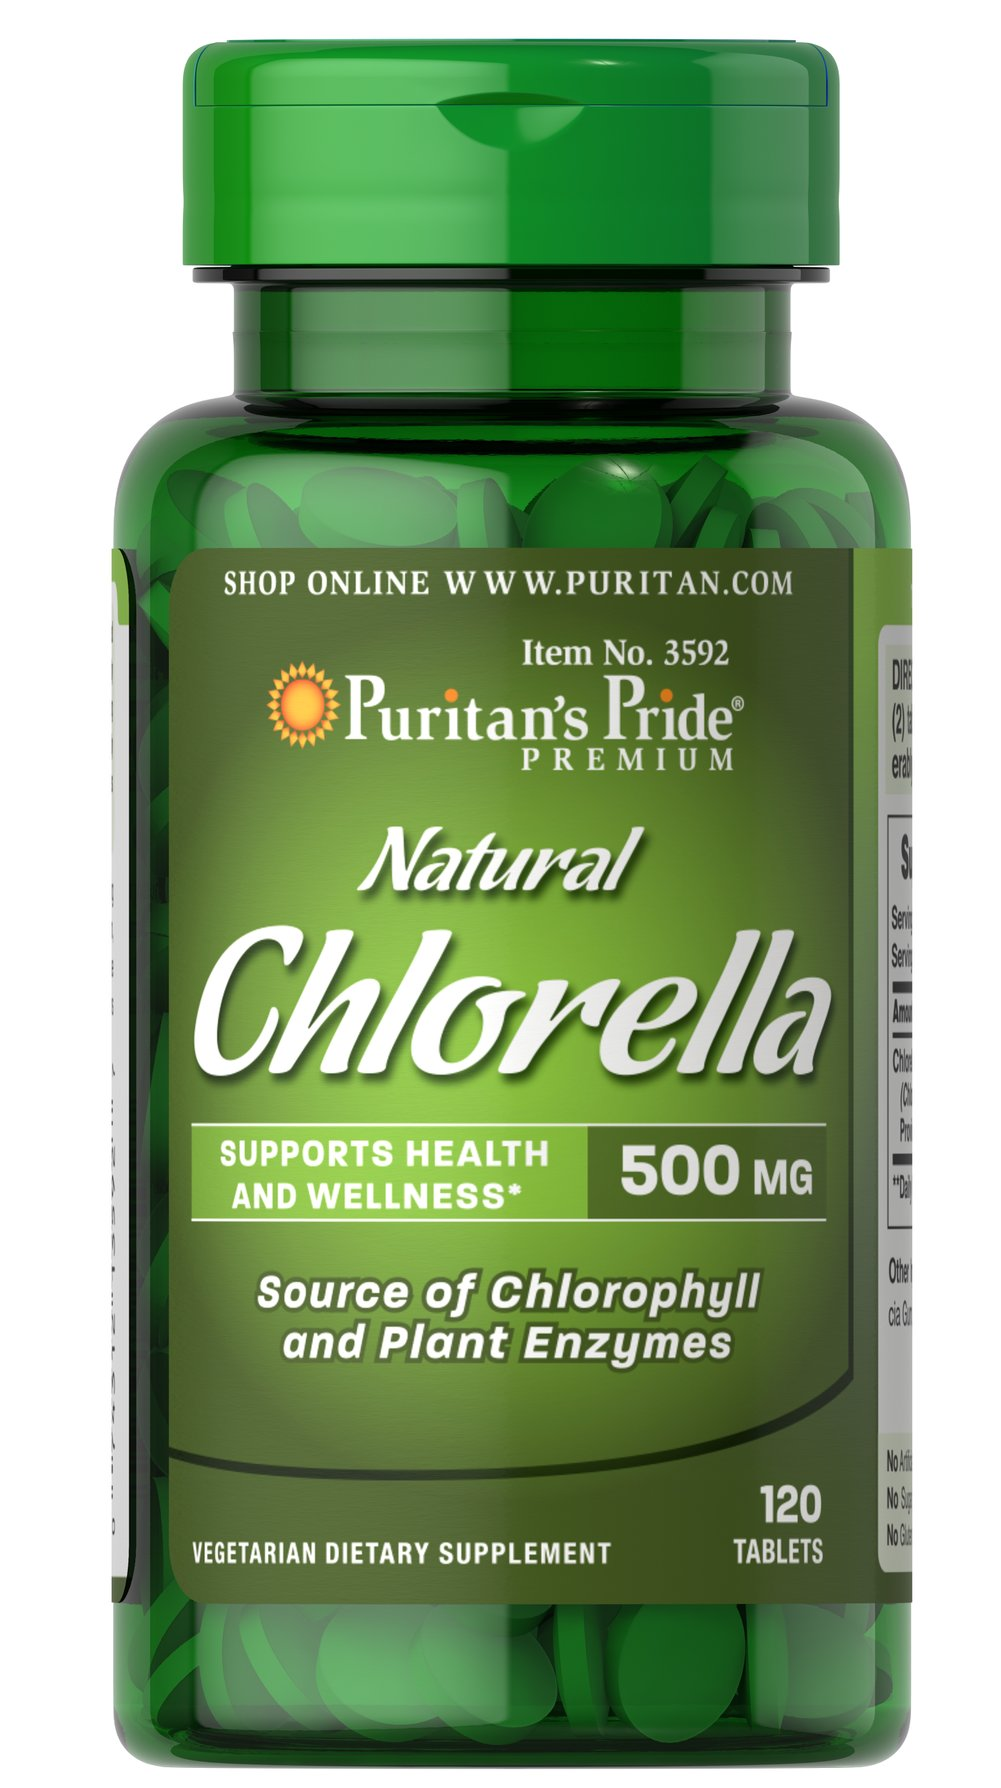 Natural Chlorella 500 mg <p>Health-conscious consumers are getting back to basics and that is one of the reasons that Chinese algae is all the rage. Chlorella is a single-celled green micro-algae that contains the phytonutrient Chlorophyll, the element in plants that captures the sun's rays. Chinese Chlorella is a natural trace source of protein and plant enzymes to support overall health and wellness.** </p> 120 Tablets 500 mg $15.39